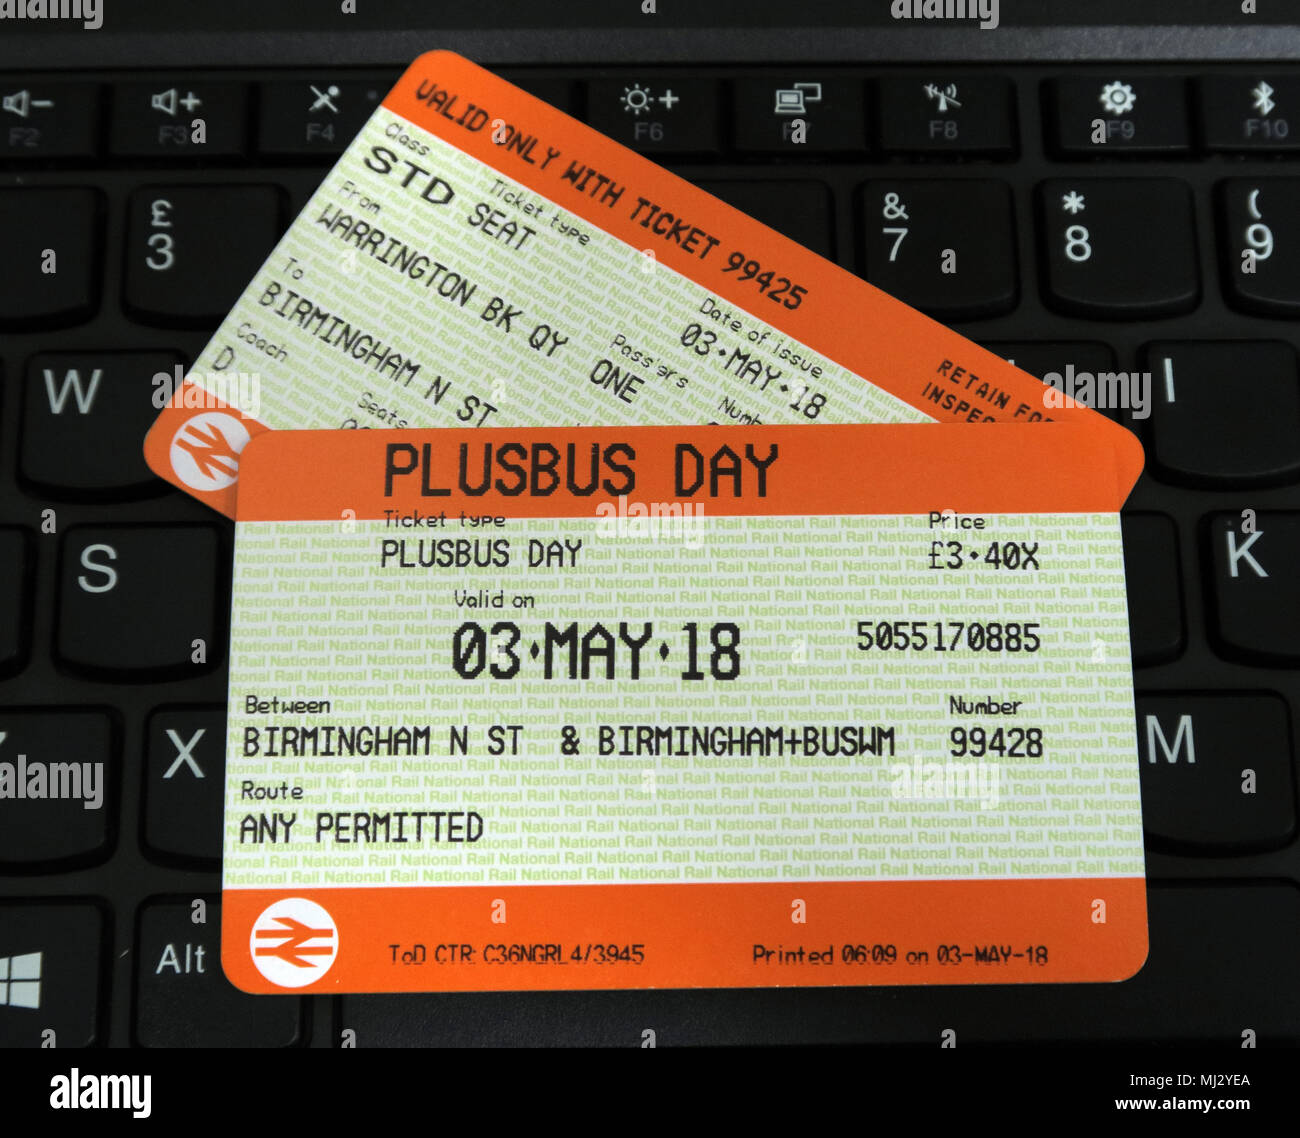 Plusbus rail ticket bus travel for Birmingham on WM travel, UK - Stock Image